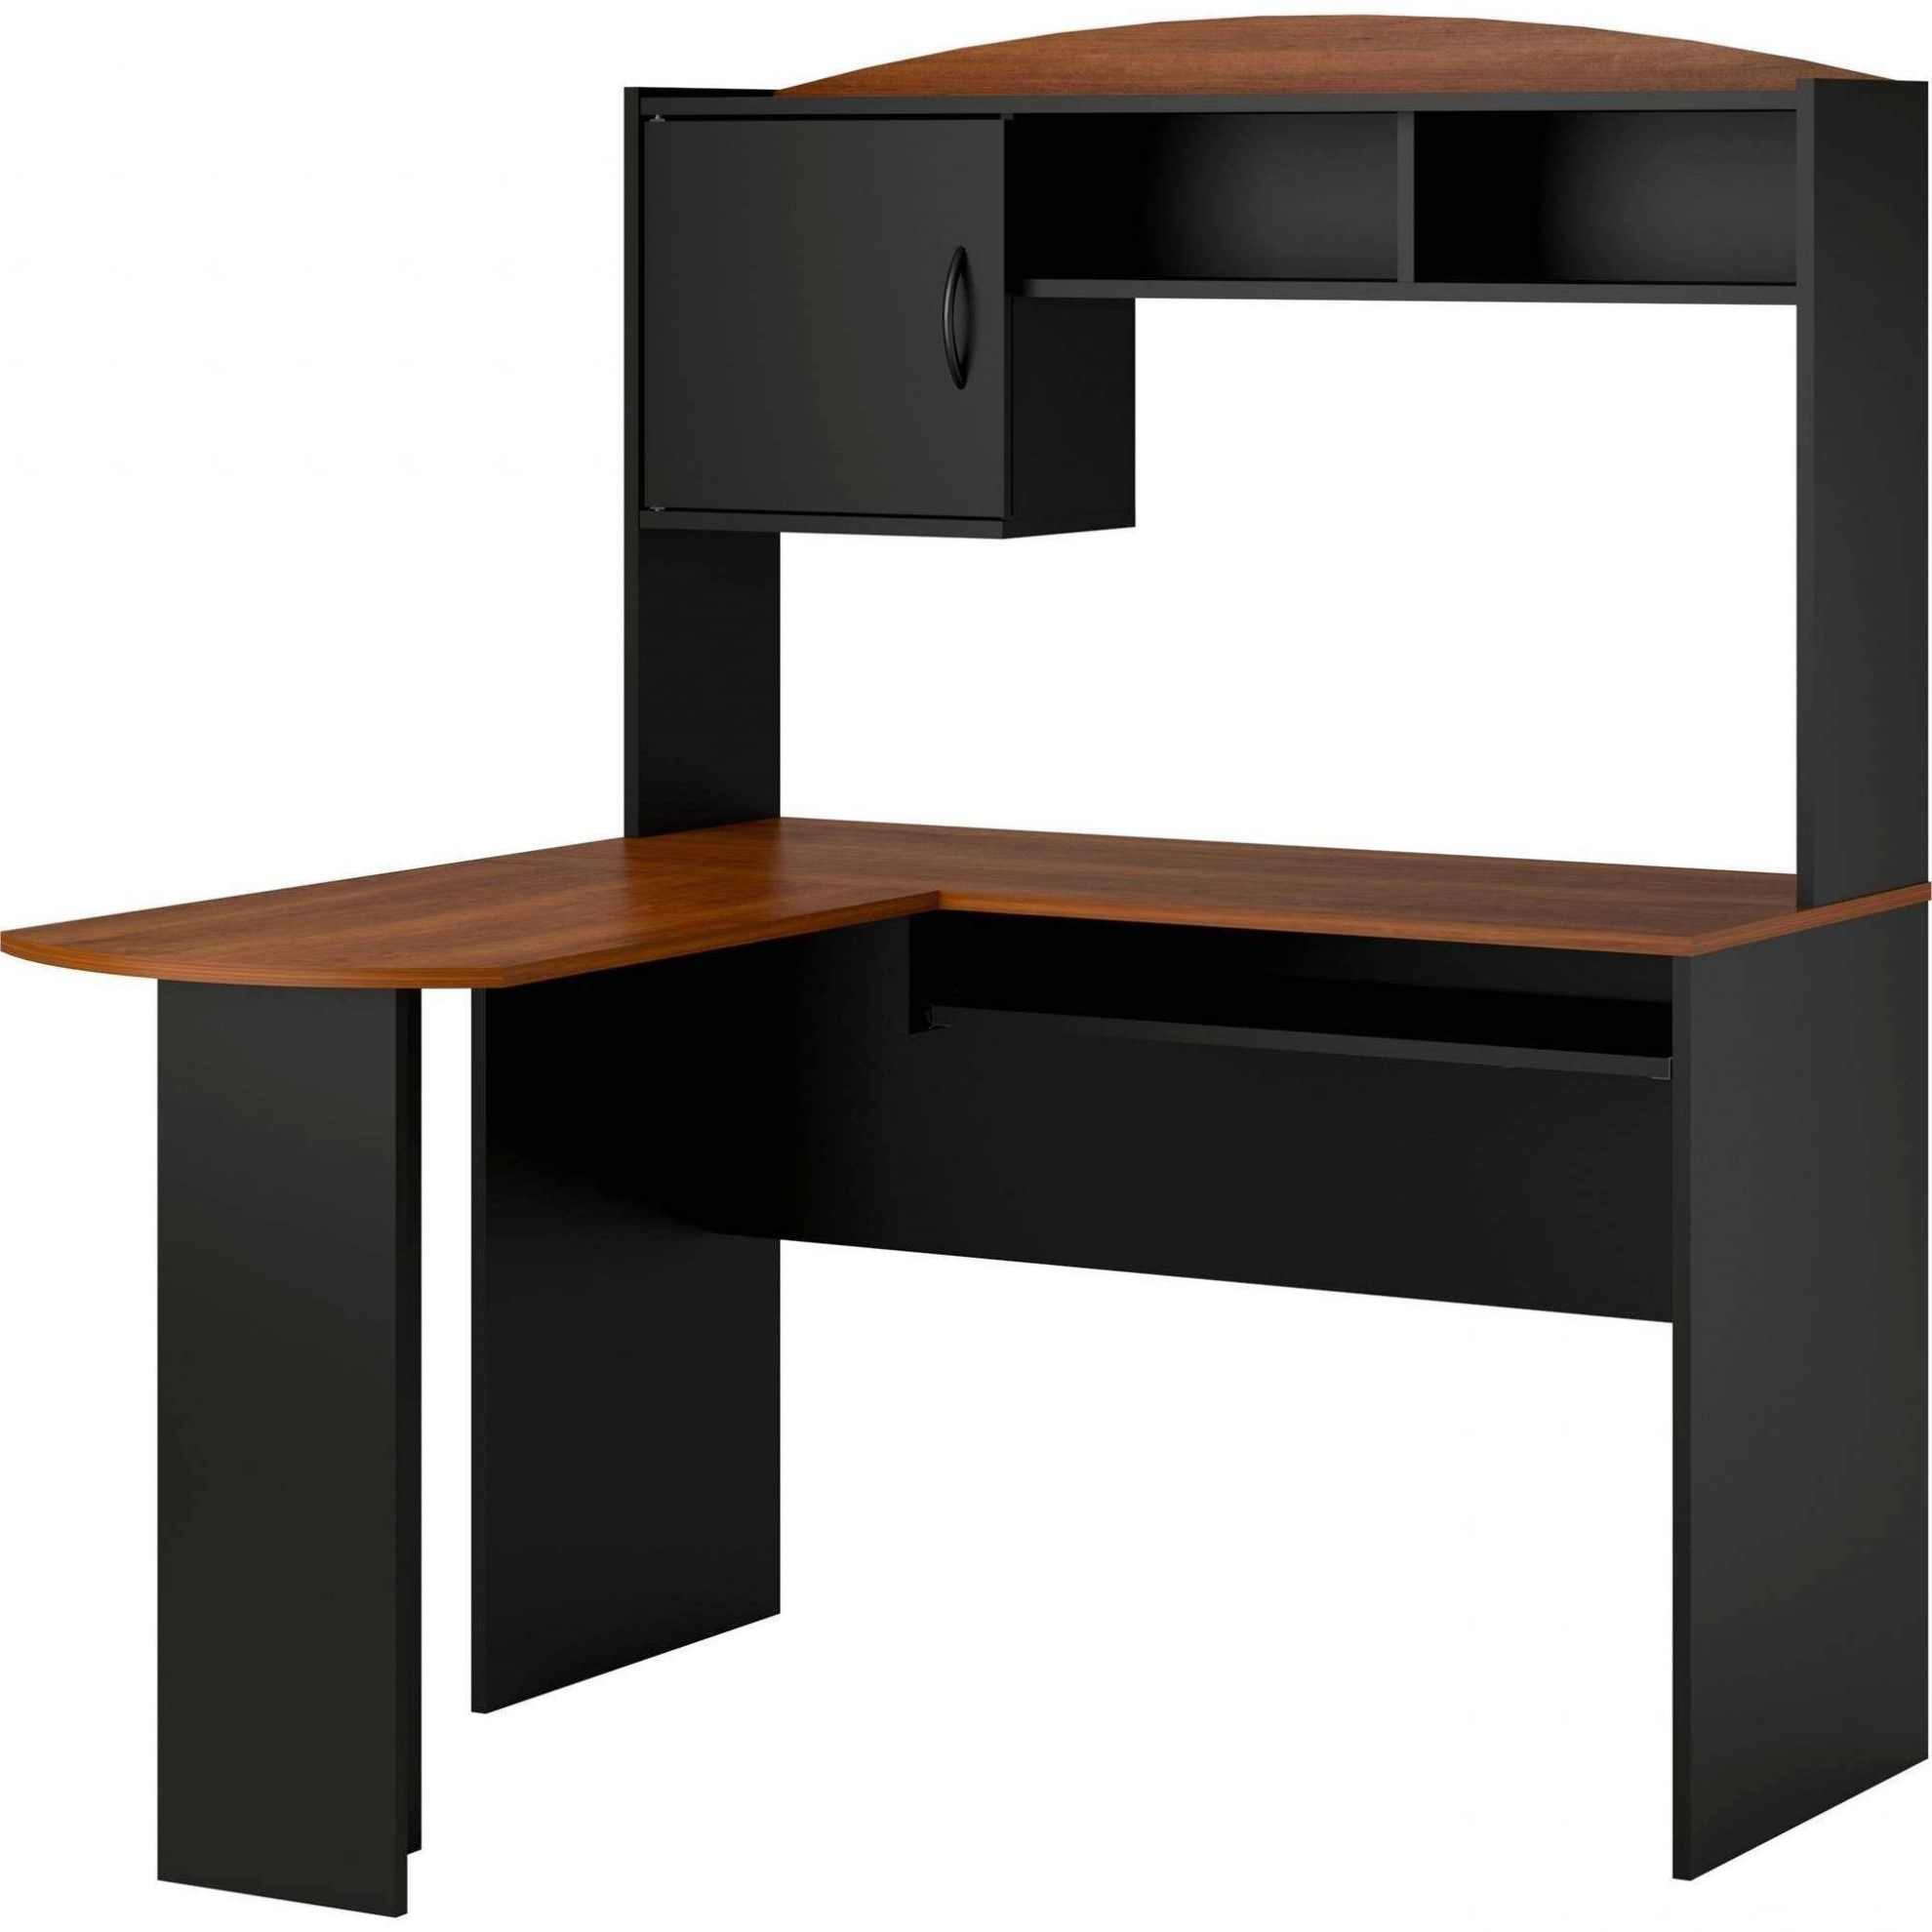 Computer Desk From Walmart (View 13 of 20)